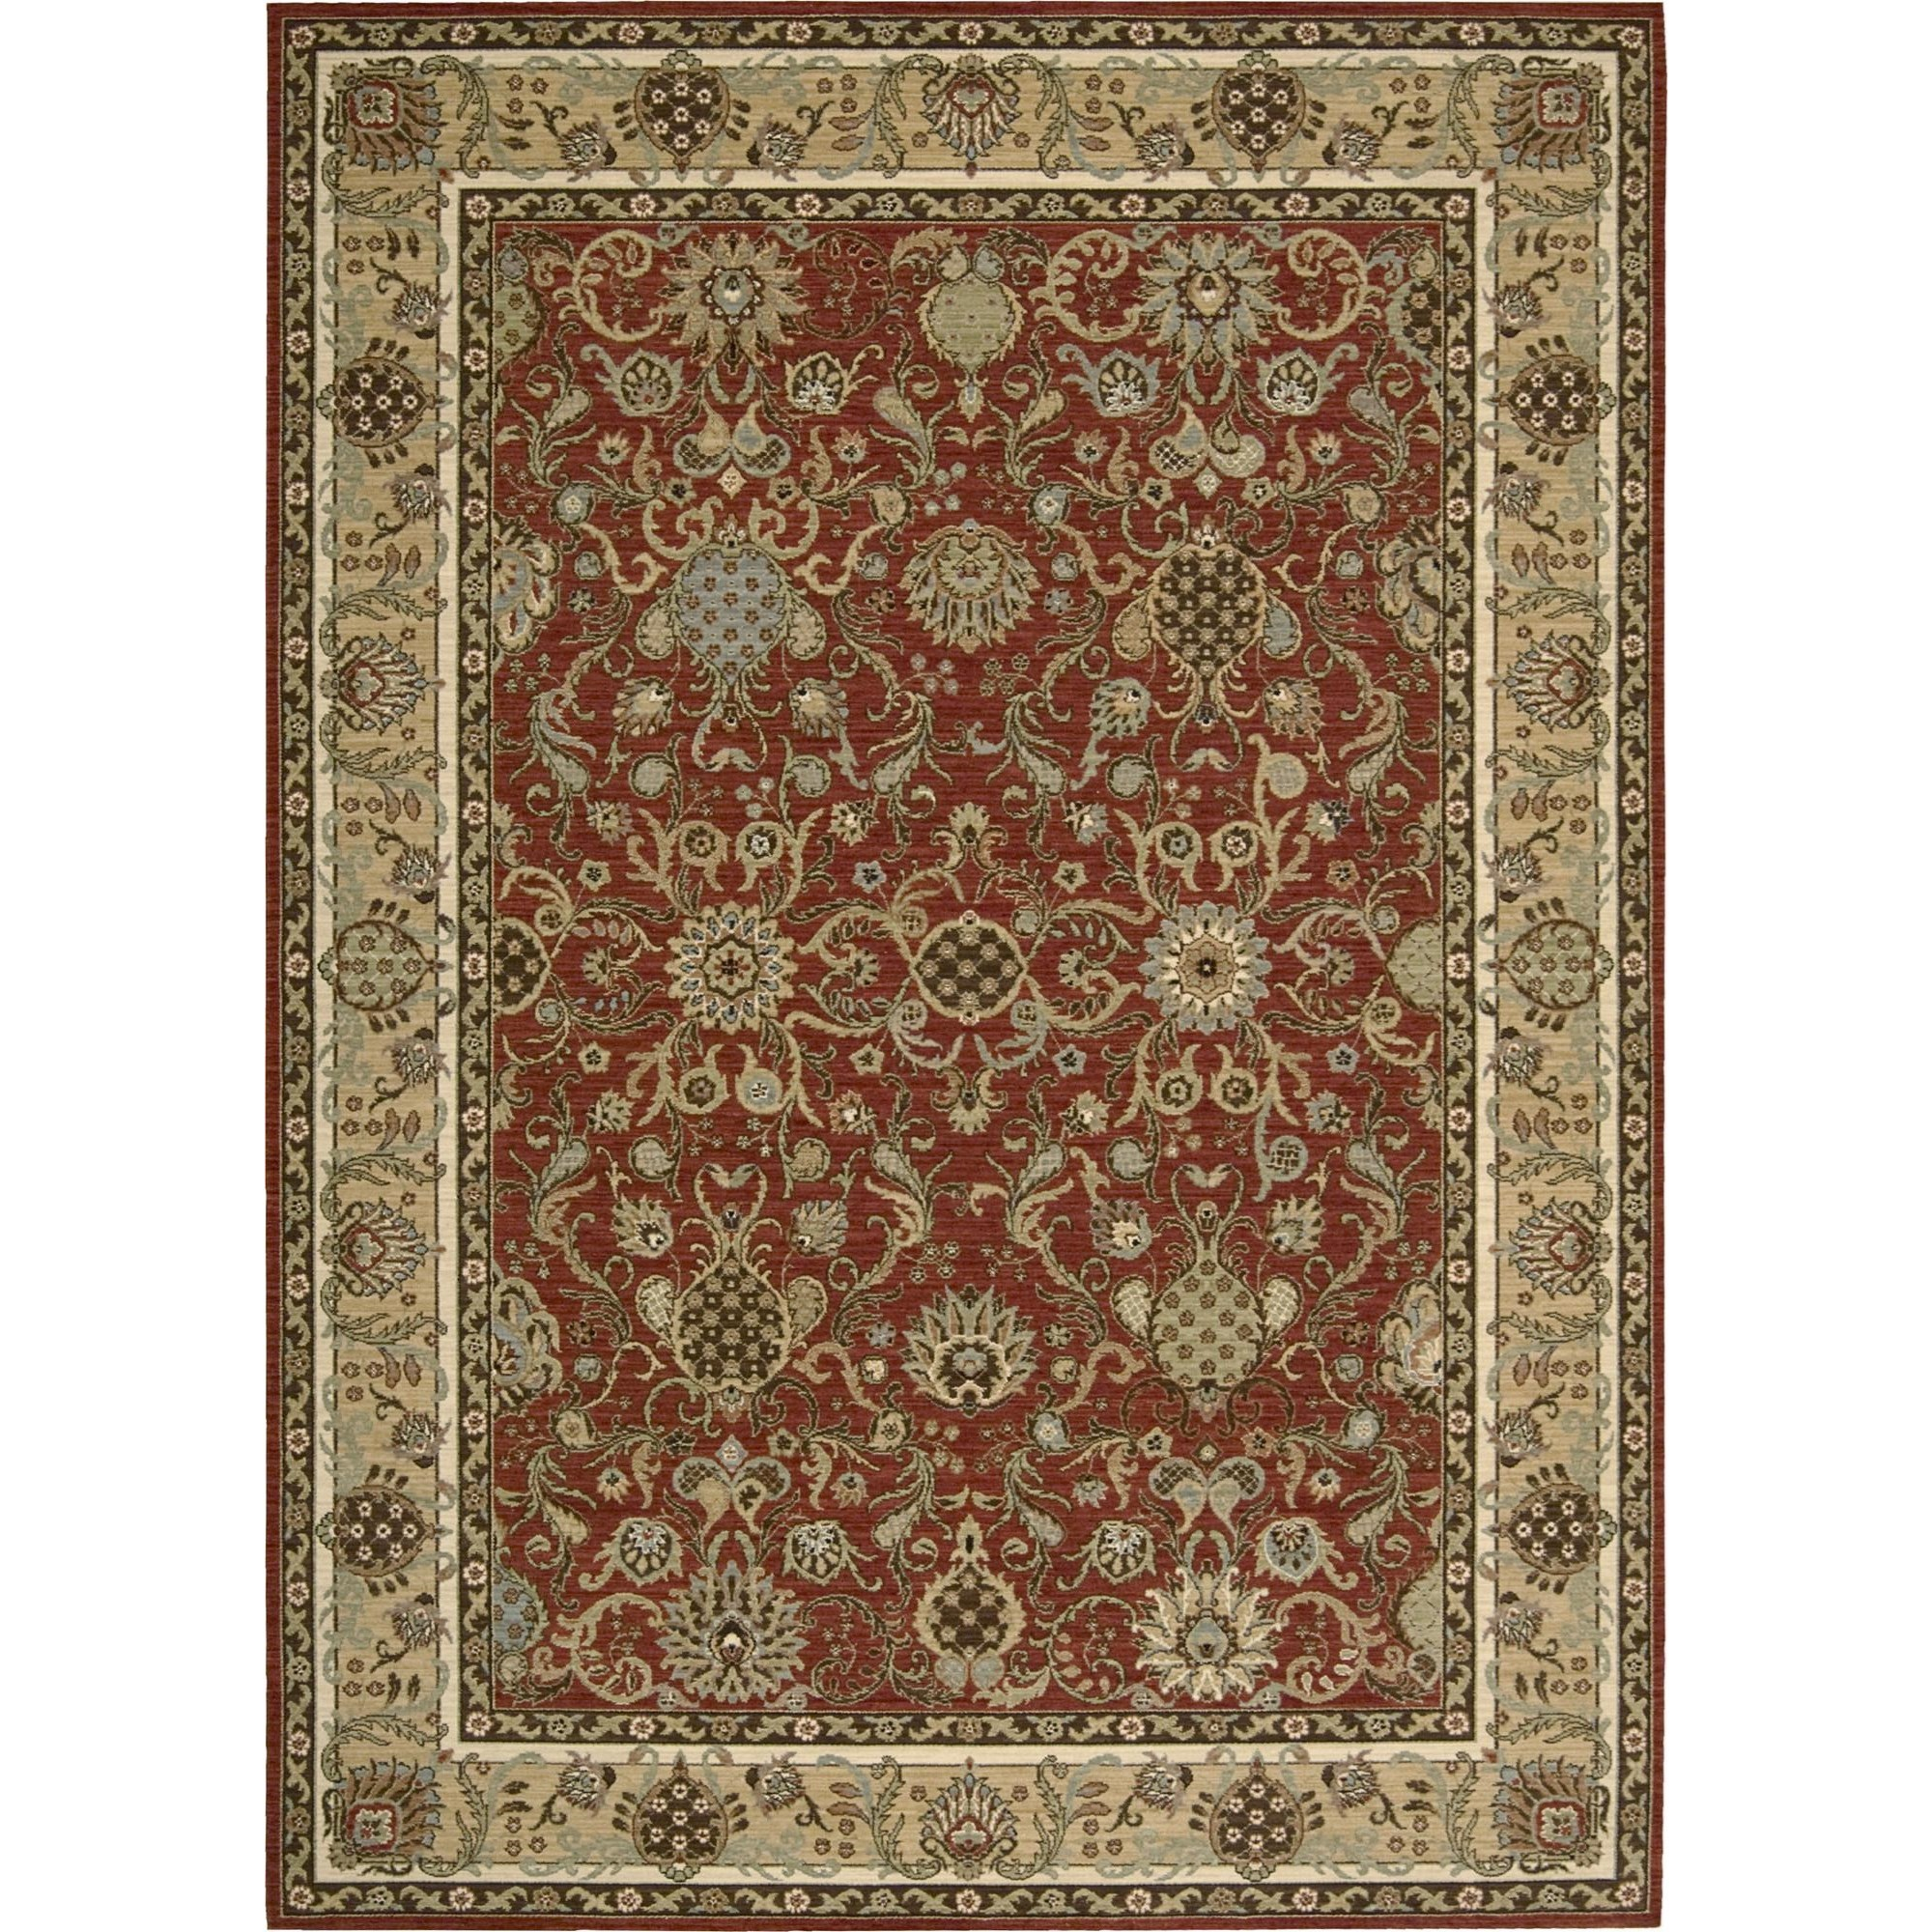 "Nourison Kathy Ireland Home presents Lumiere 3'6"" x 5'6"" Brick Area Rug - Item Number: 04364"